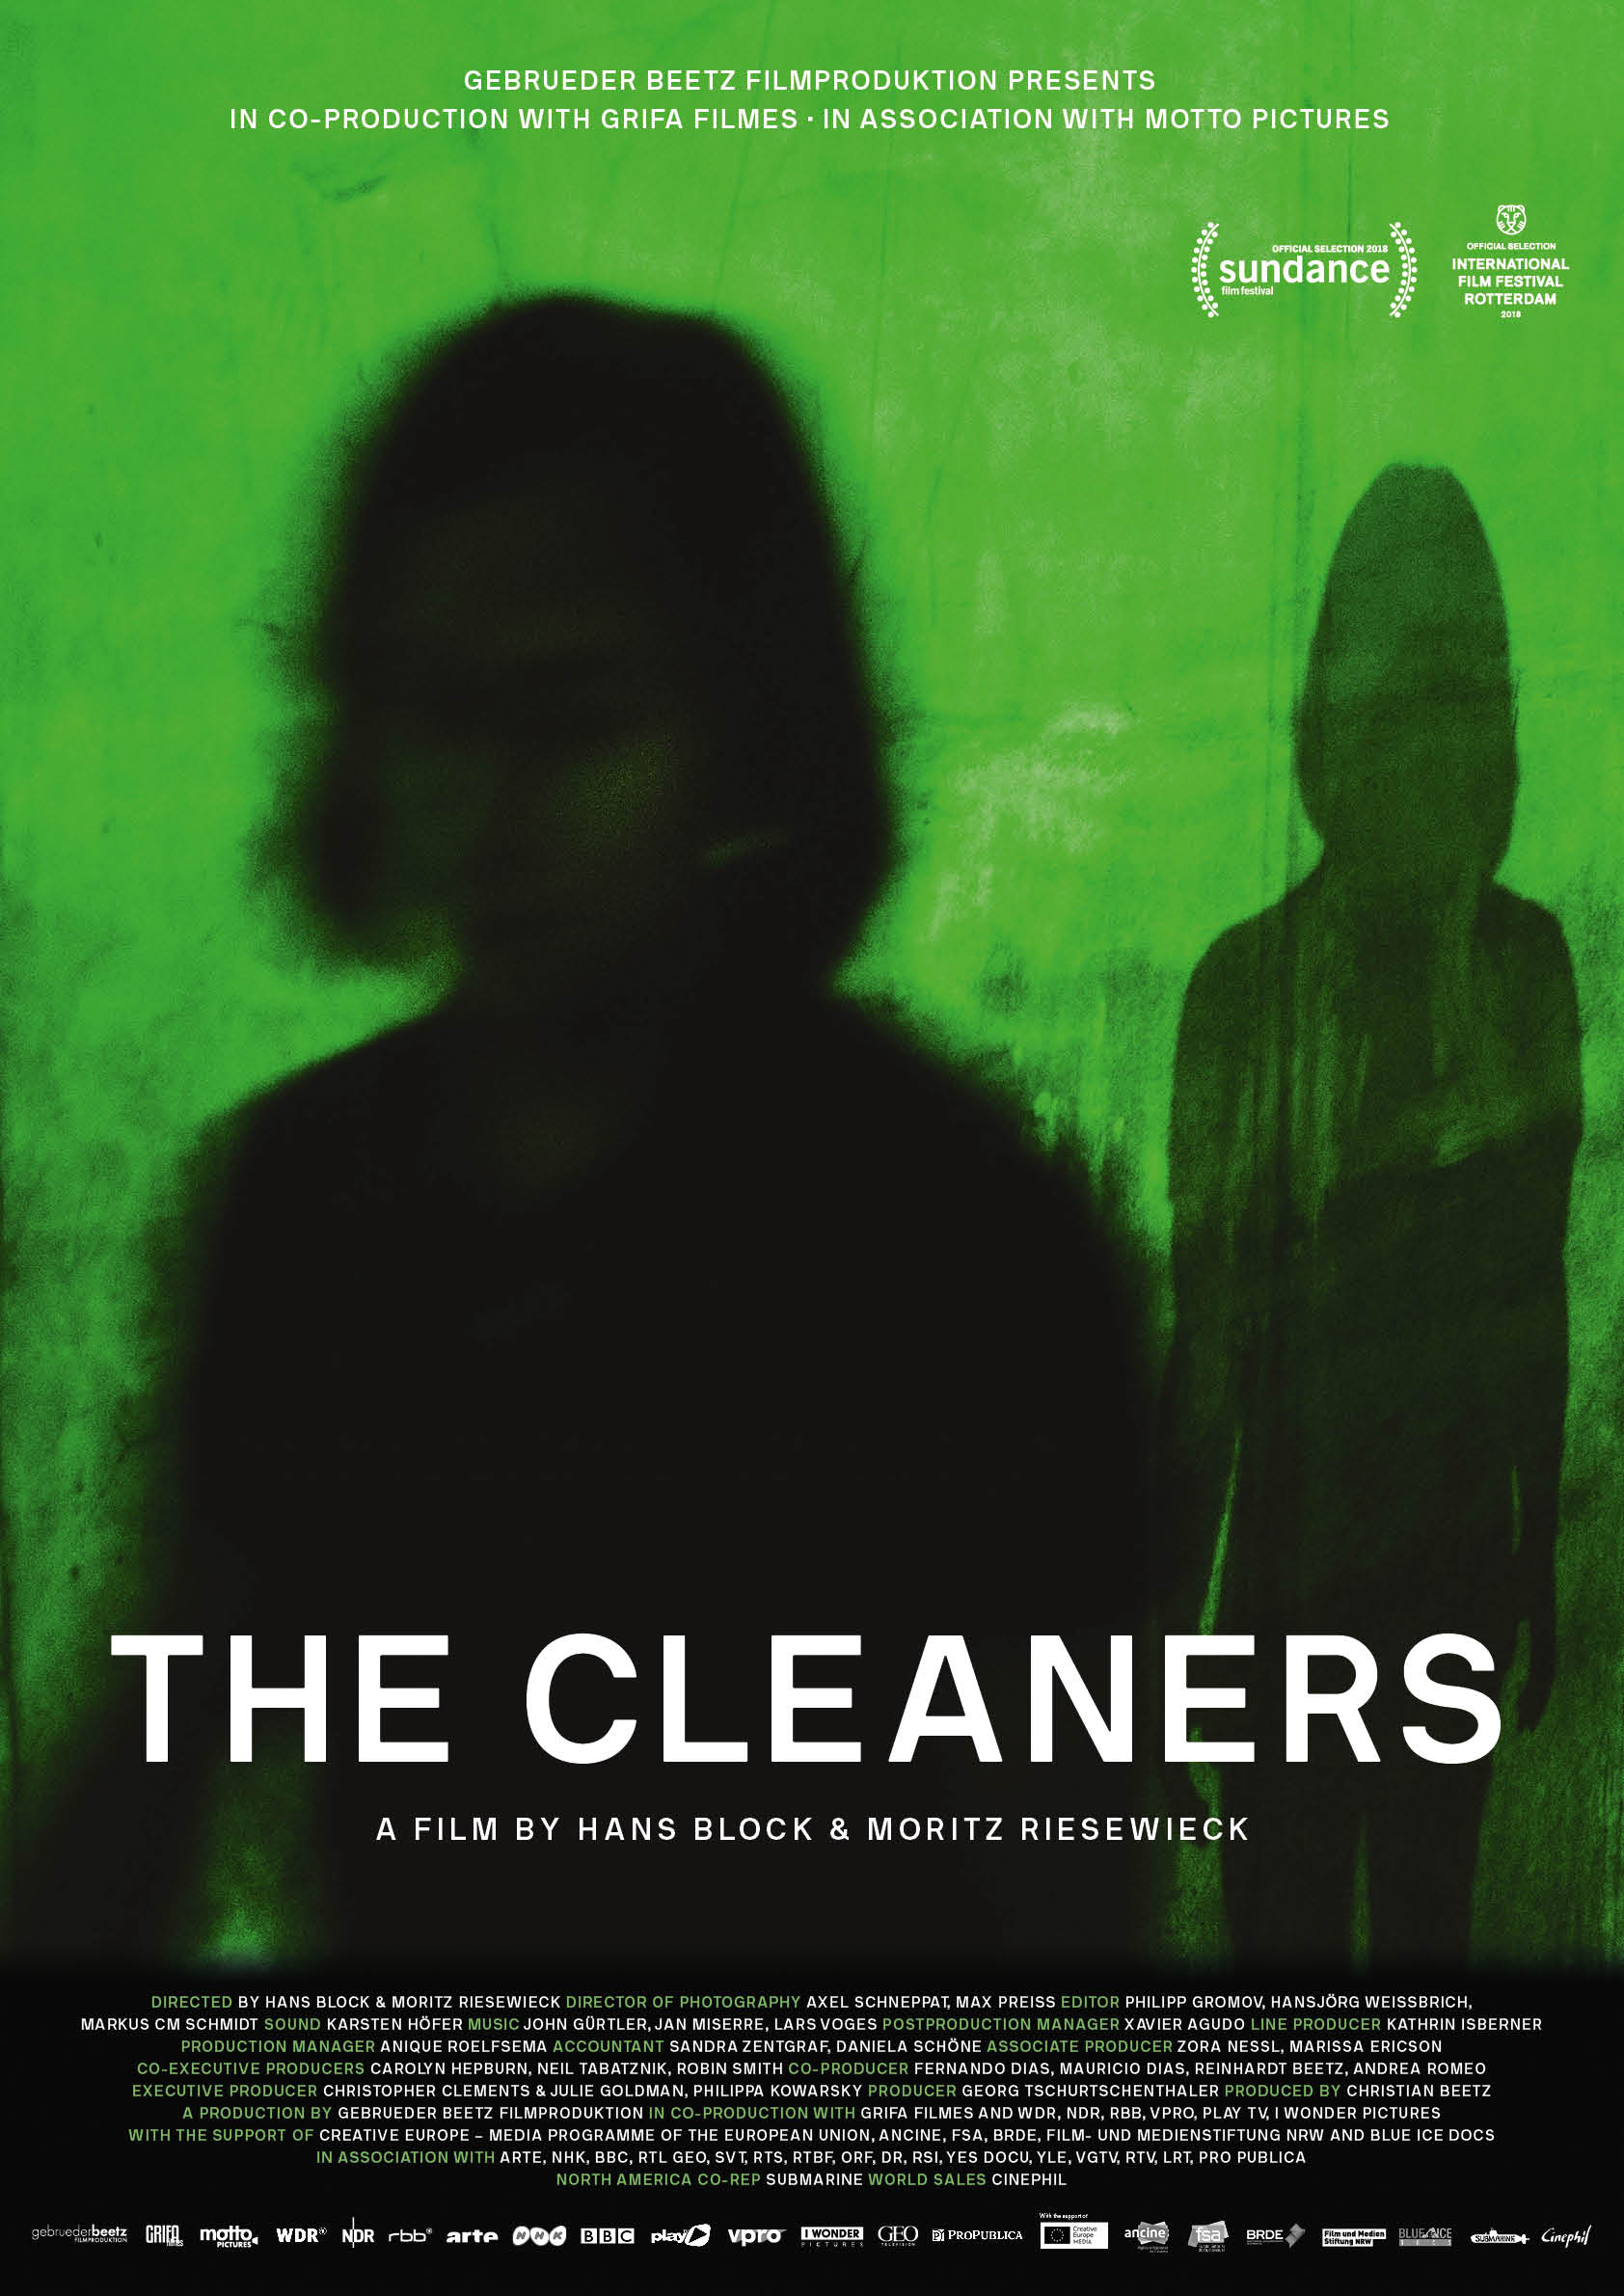 PLAKAT_THE CLEANERS 2018_gebrueder beetz filmproduktion.jpg